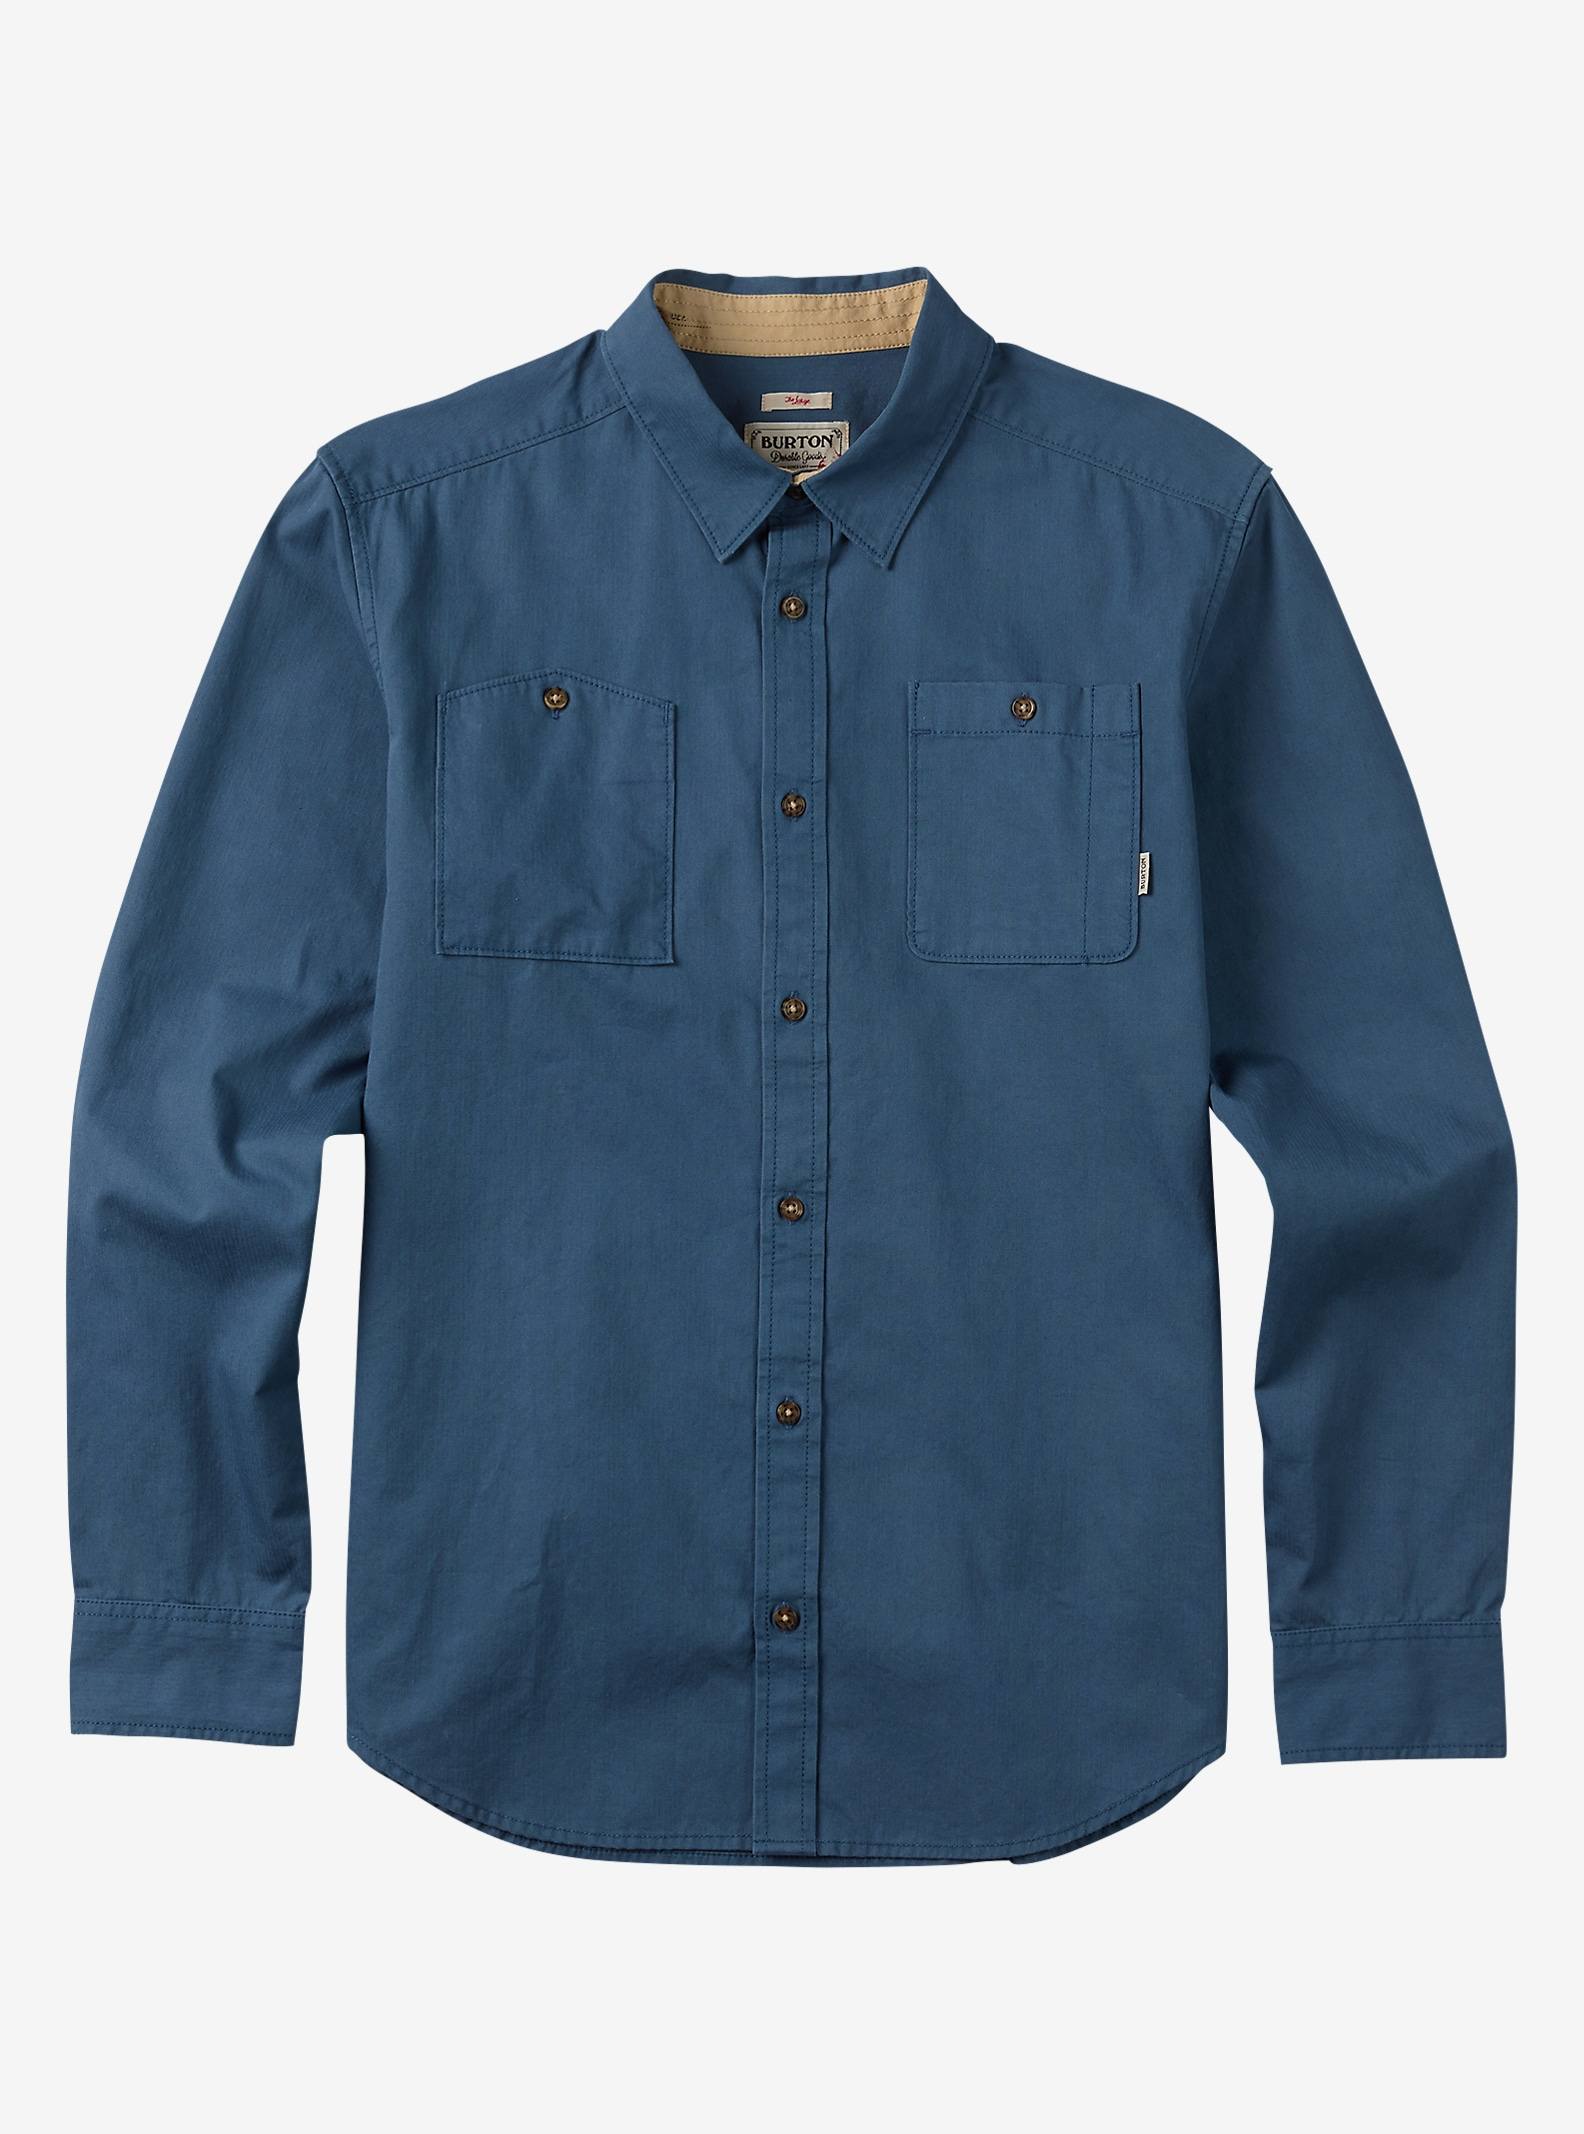 Burton Glade Long Sleeve Shirt shown in Washed Blue